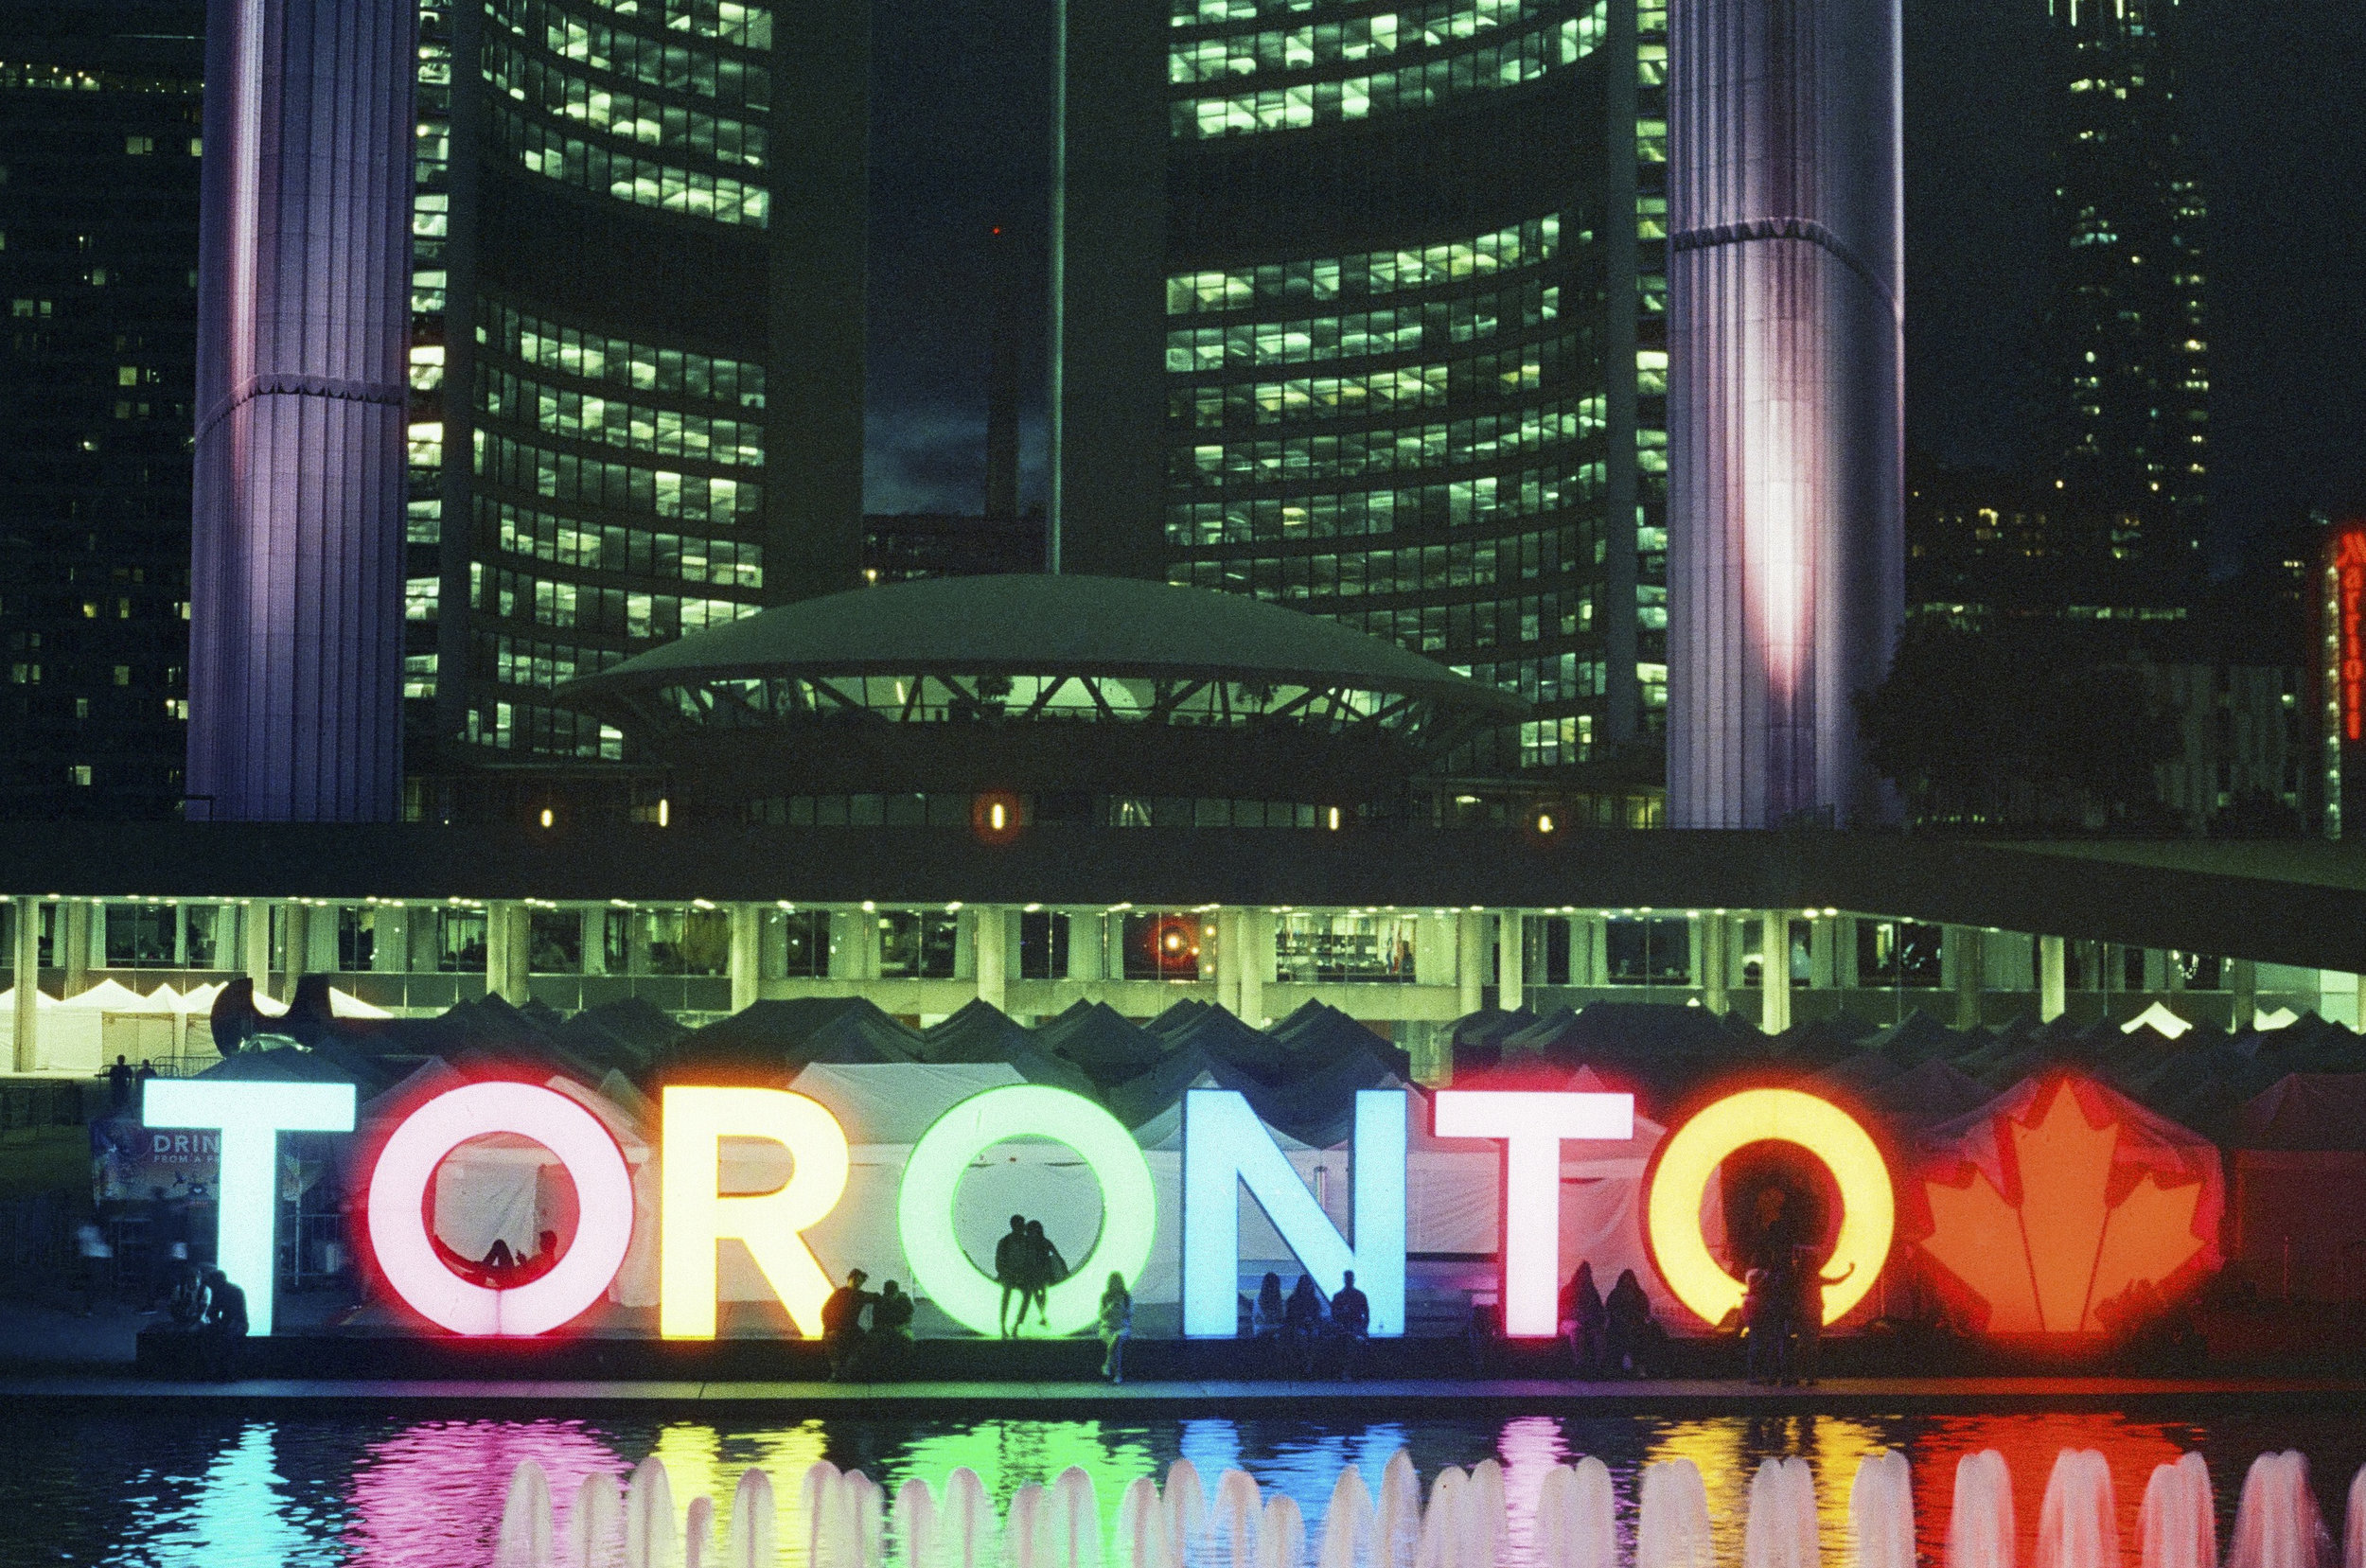 A wonderful place - Shot with Canon AE-1 - 35mm Film - Toronto, ON